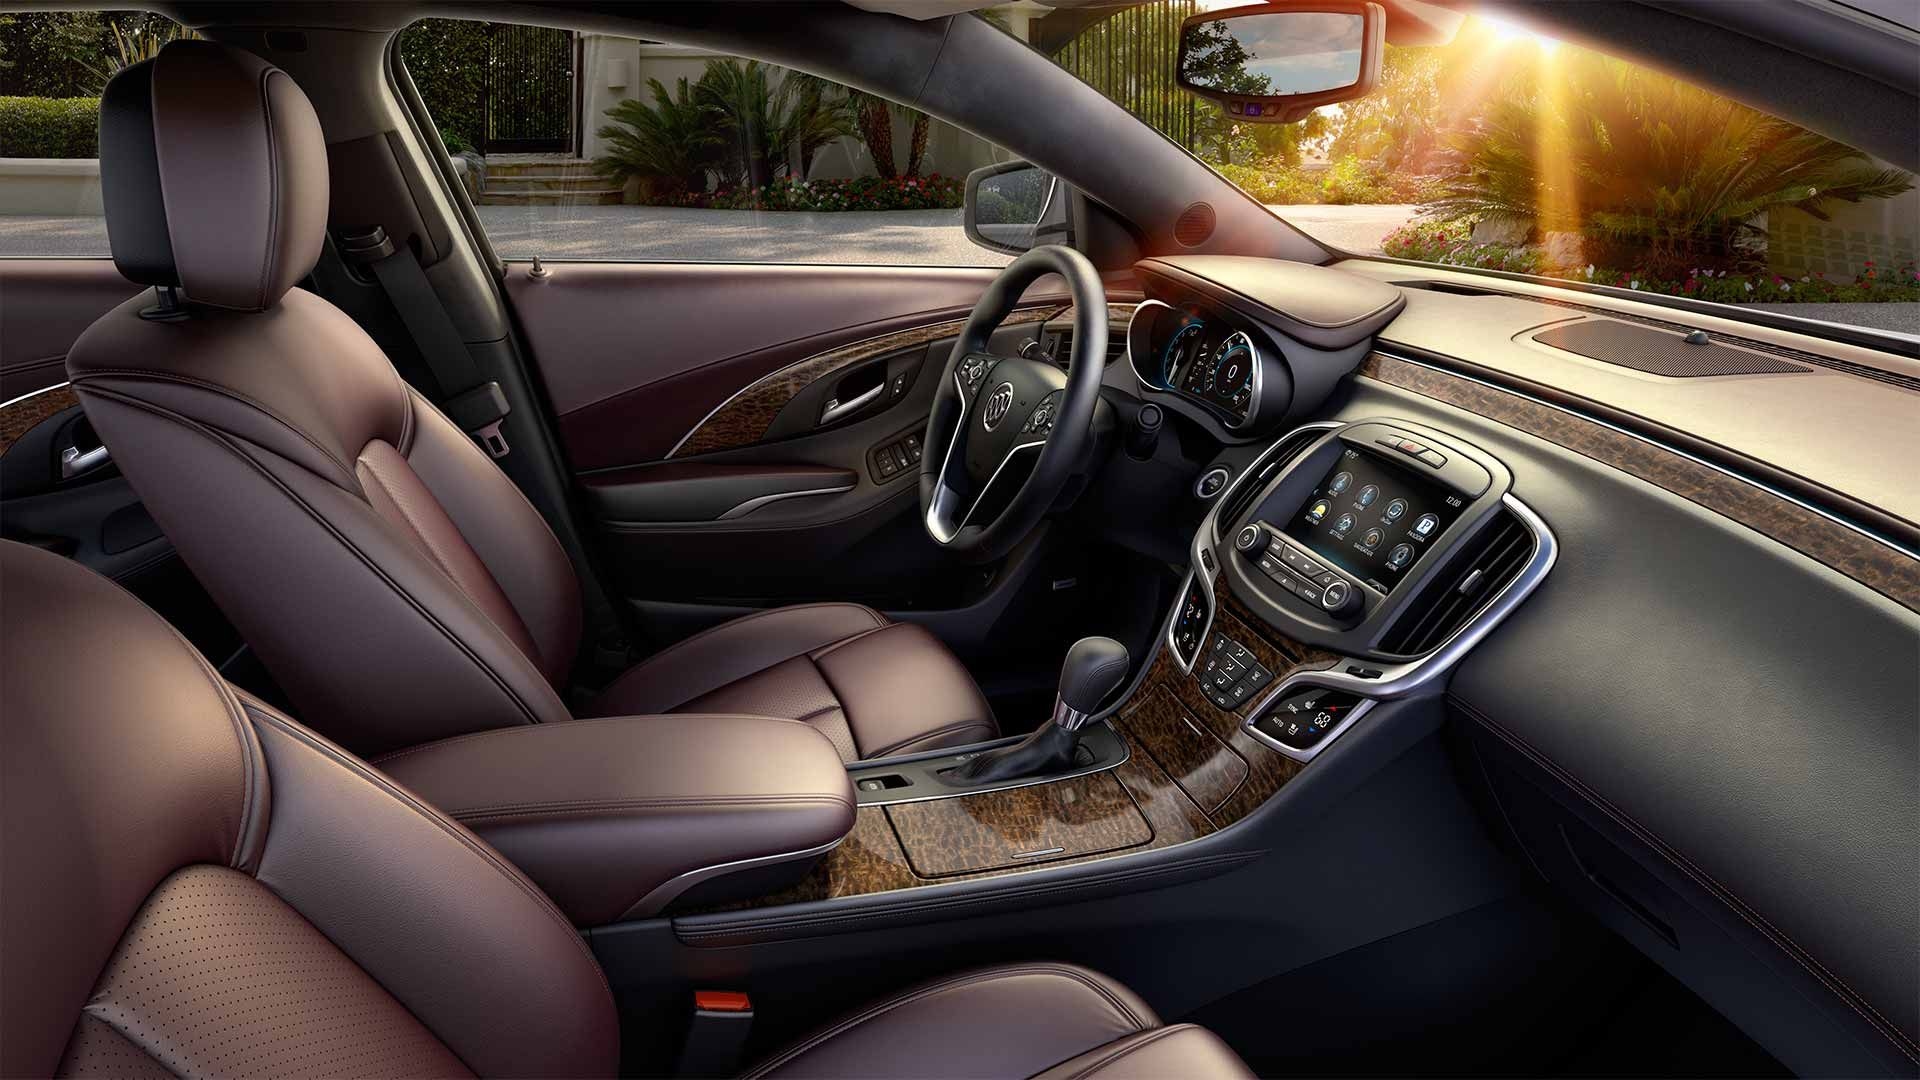 2014 Buick Lacrosse Interior Hustoncadillacbuickgmc Com Buick Enclave New Cars Buick